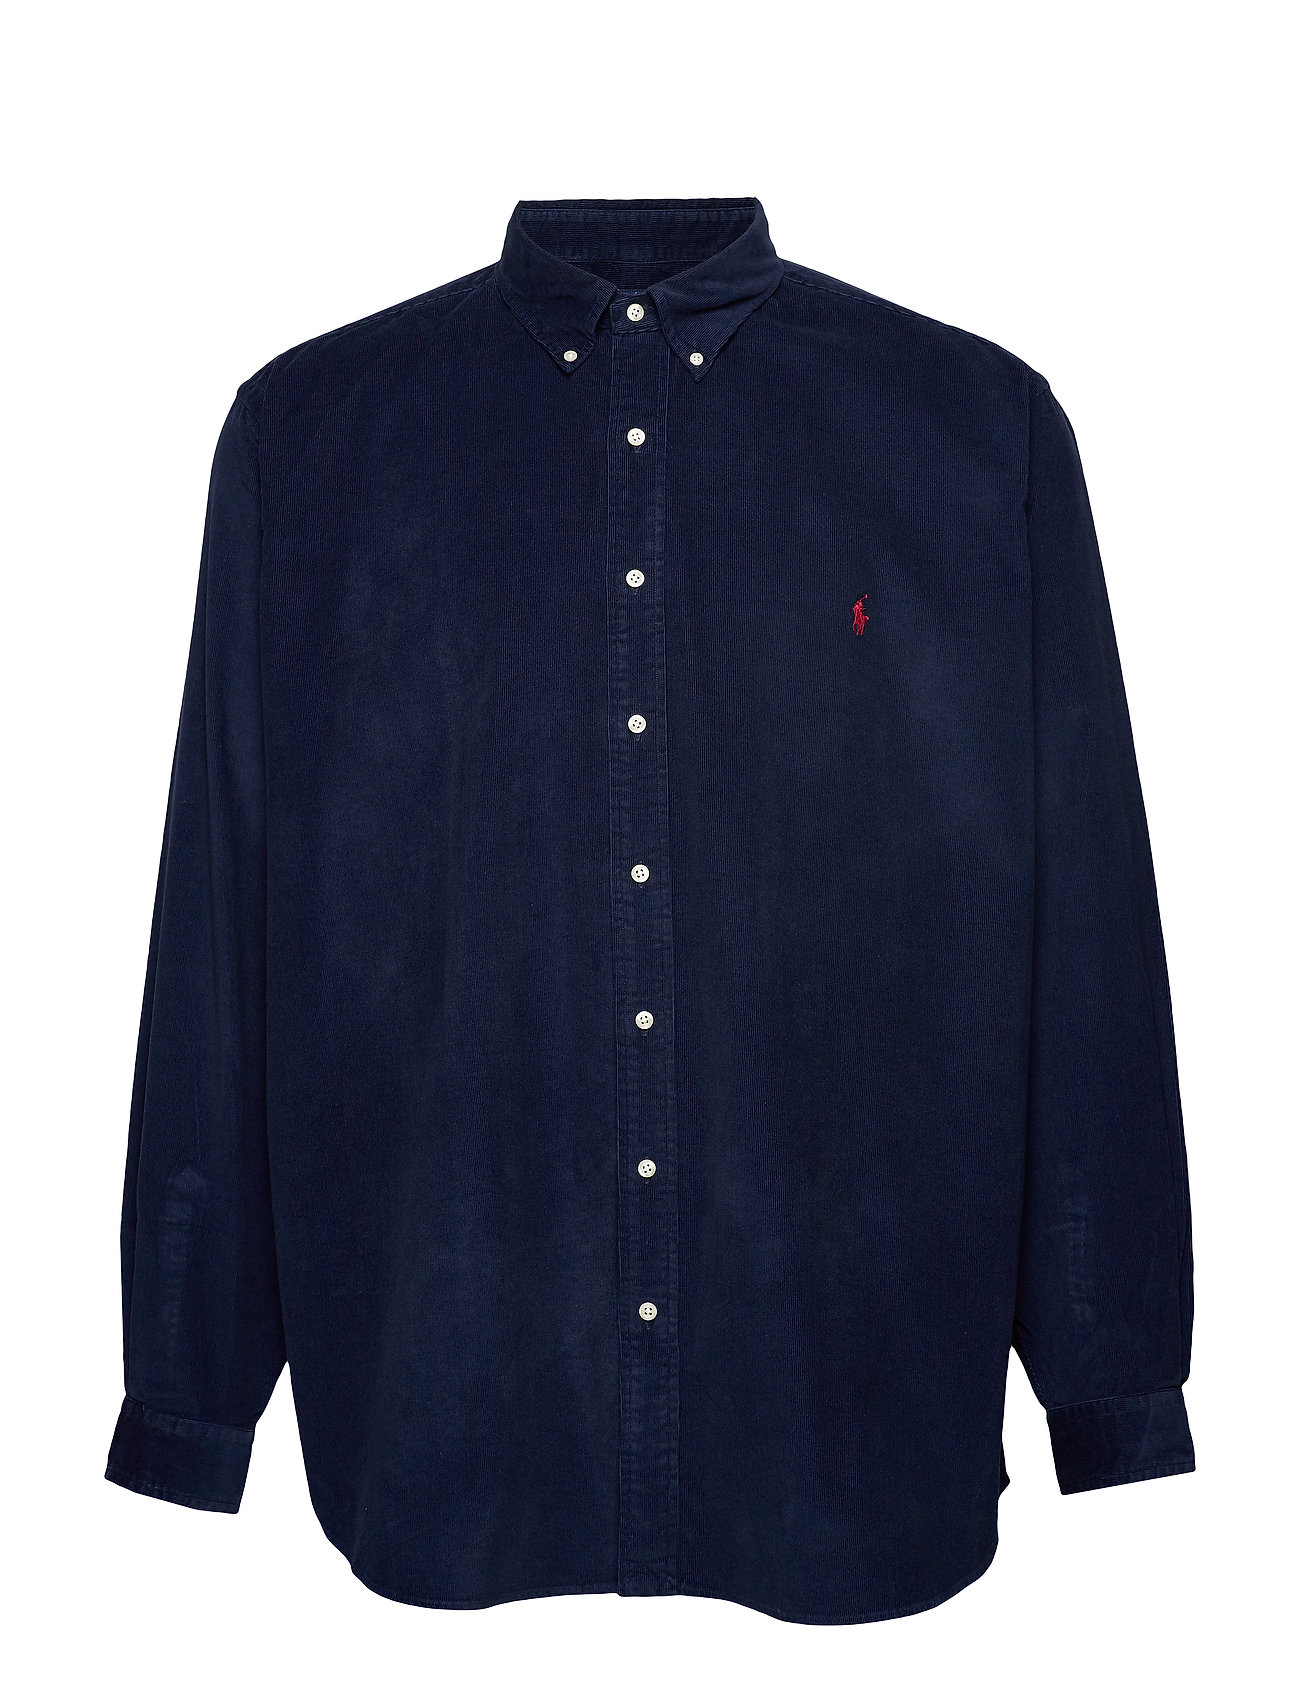 Polo Ralph Lauren Big & Tall Classic Fit Corduroy Shirt - CRUISE NAVY